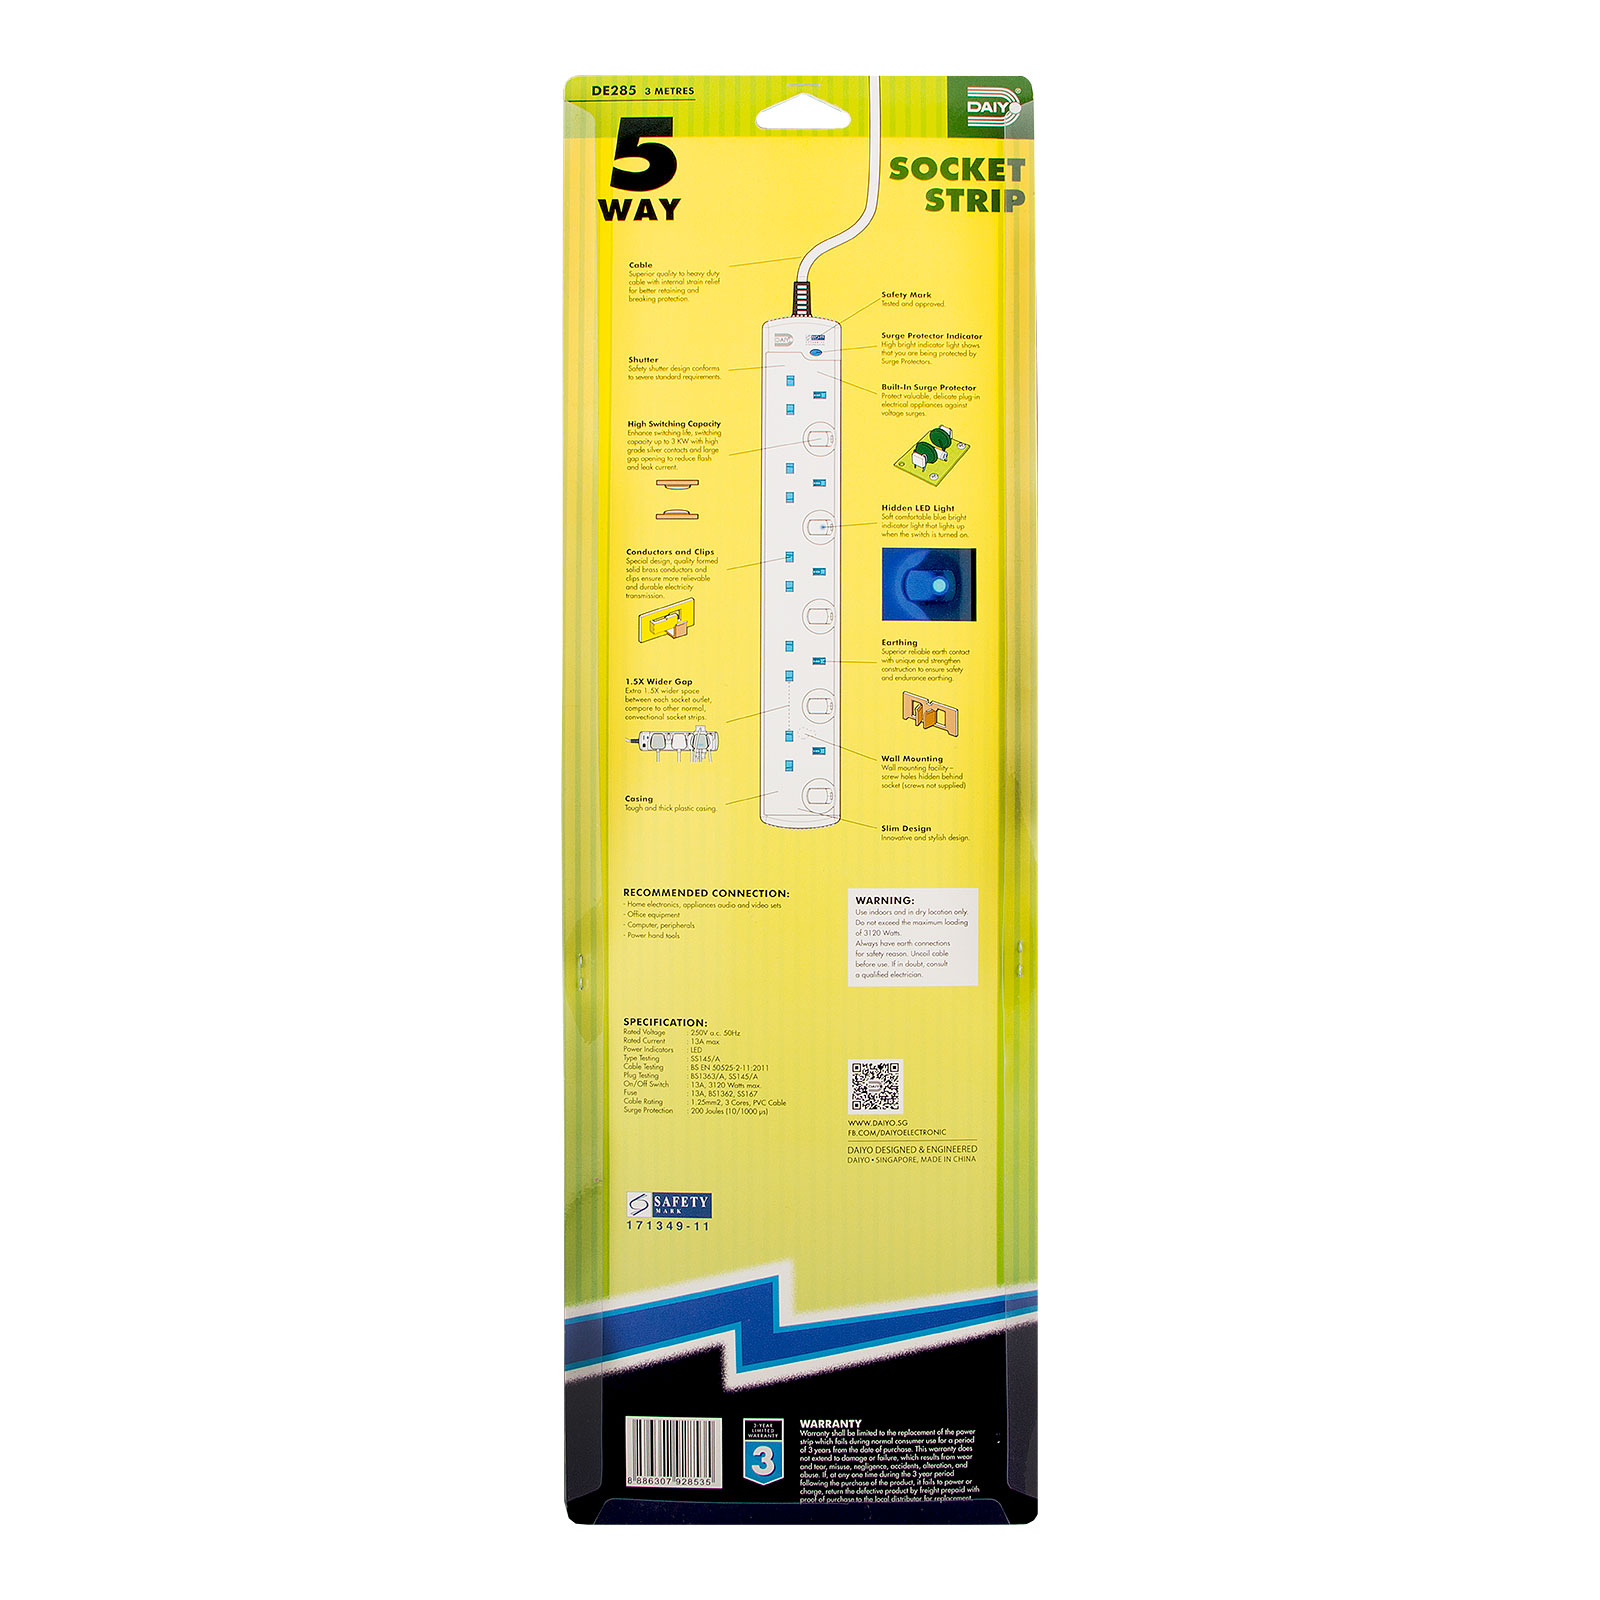 DE 285 LED 5 Way Socket Strip With Surge 3M